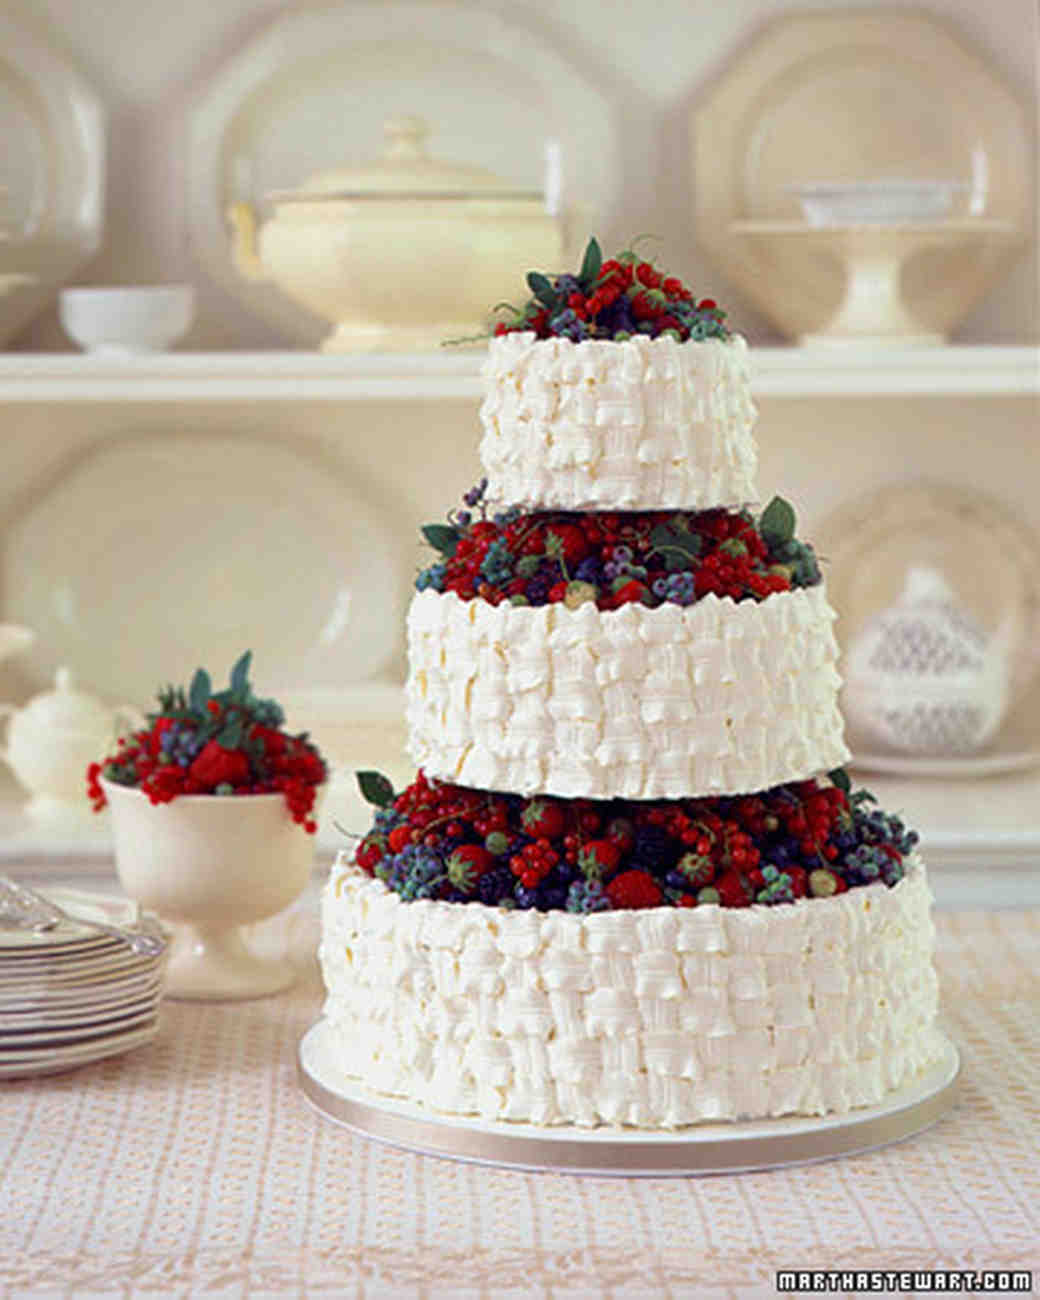 Very Berry Cakes and Confections | Martha Stewart Weddings